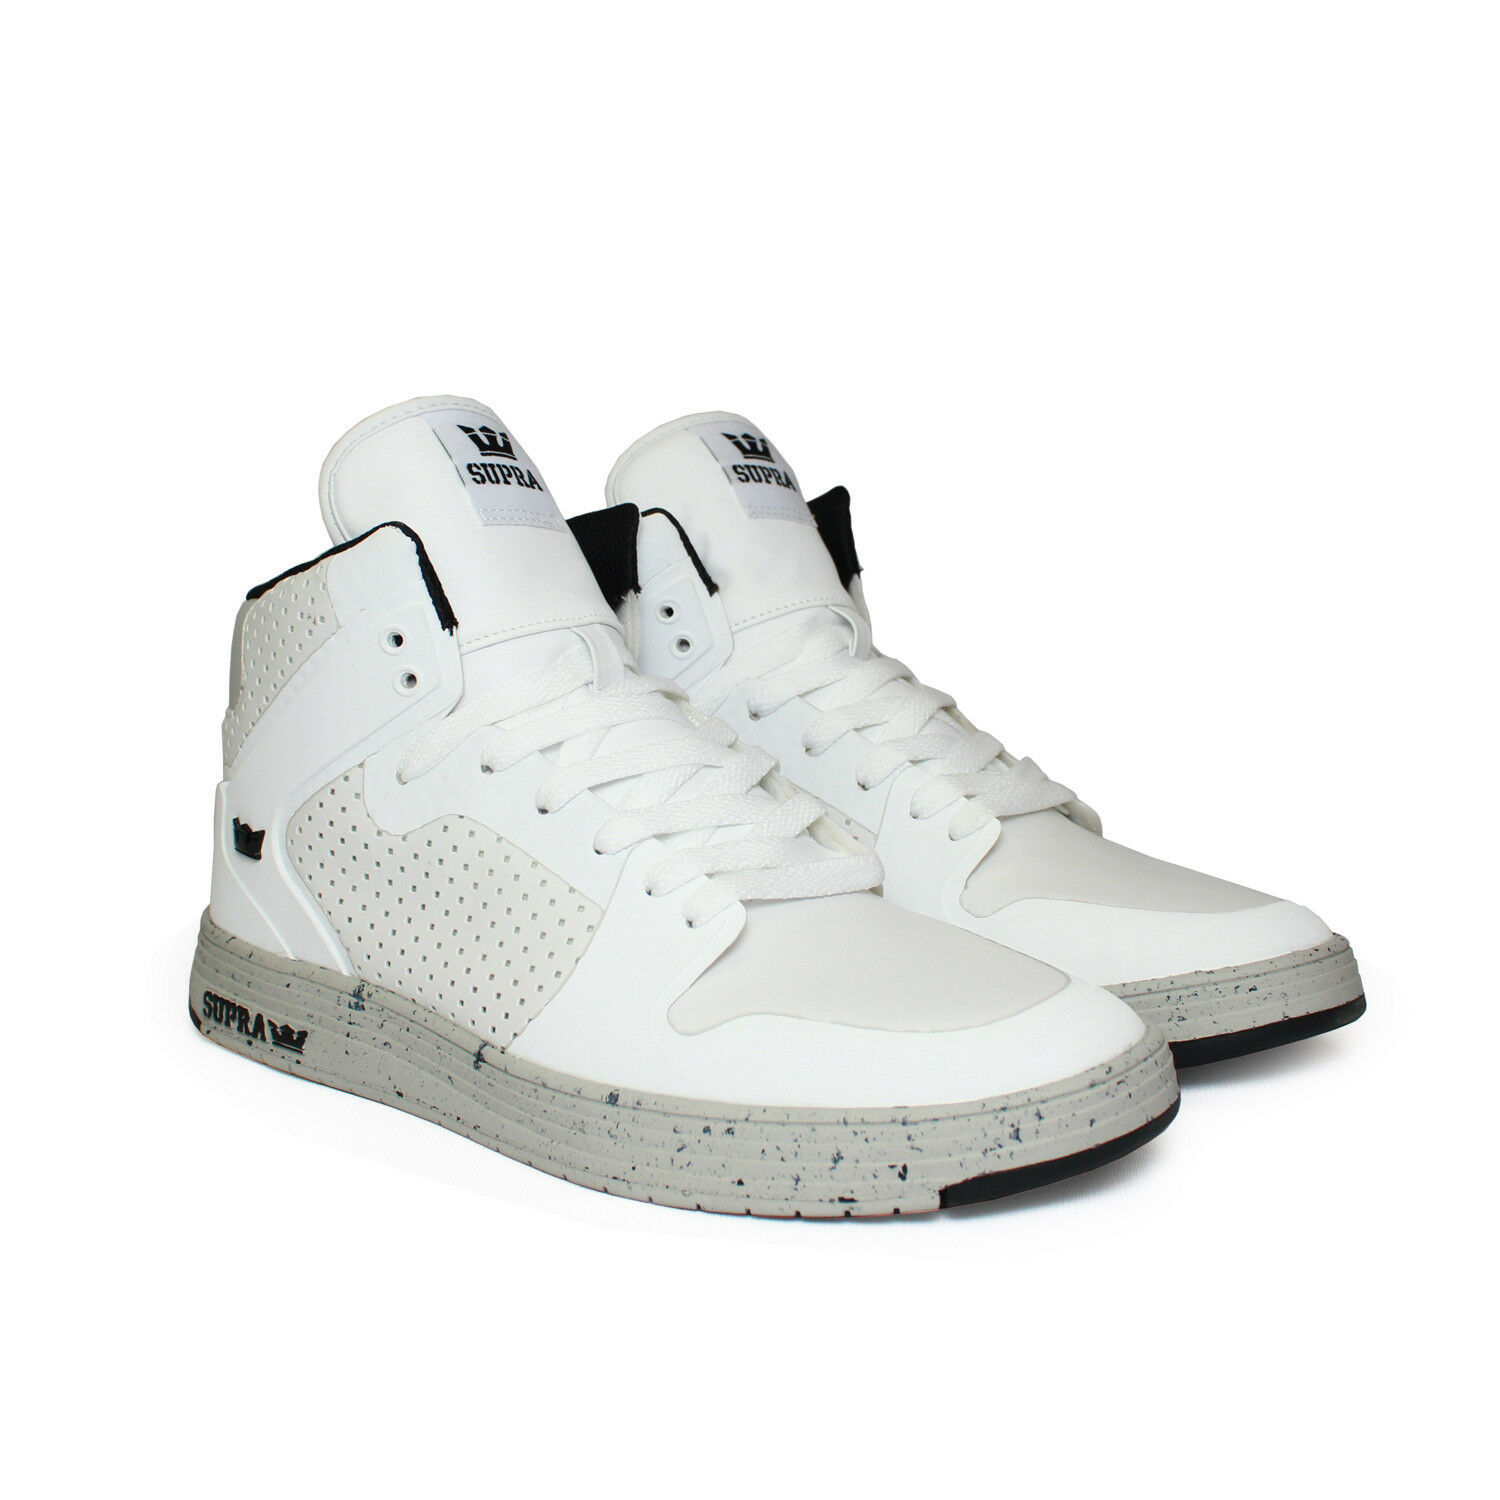 SUPRA Mens Vaider 2.0 LX High Top Sneaker White Light Grey Size 9 US